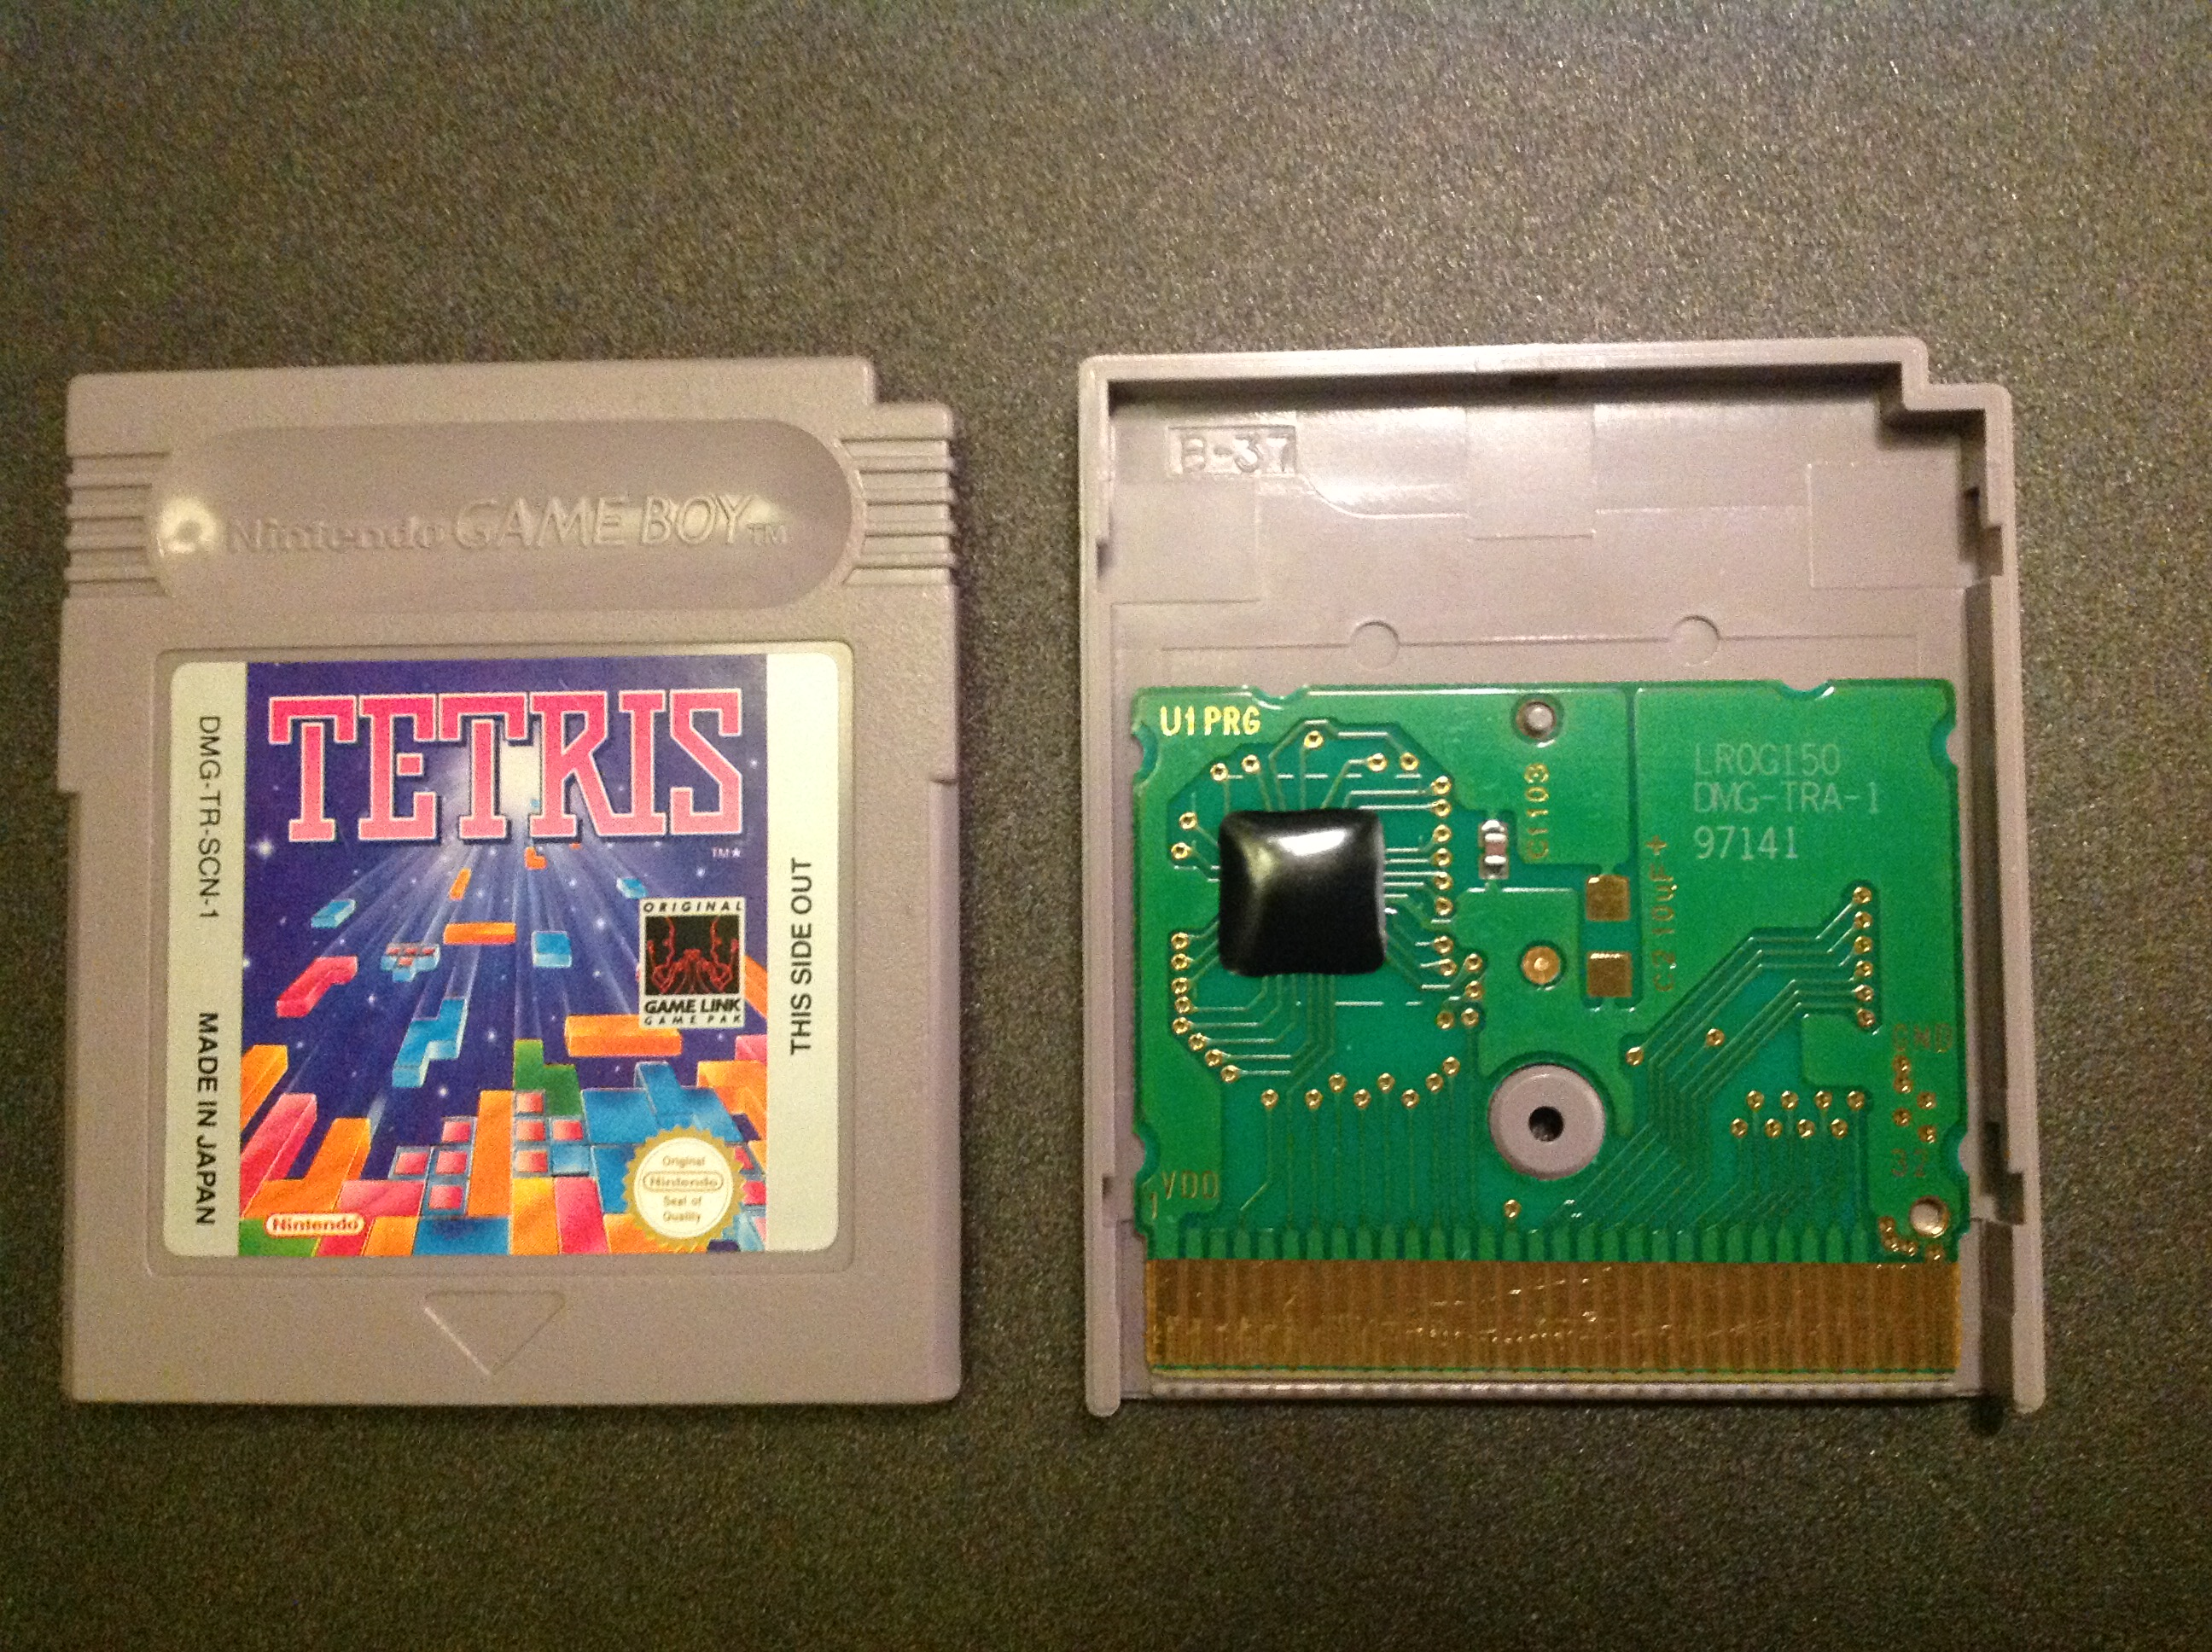 Mooneye Gb Cartridge Analysis Tetris No Mbc Joonas Javanainen Game Circuits We Start Our Gameboy Journey By First Looking At A Very Popular With Simple Hardware